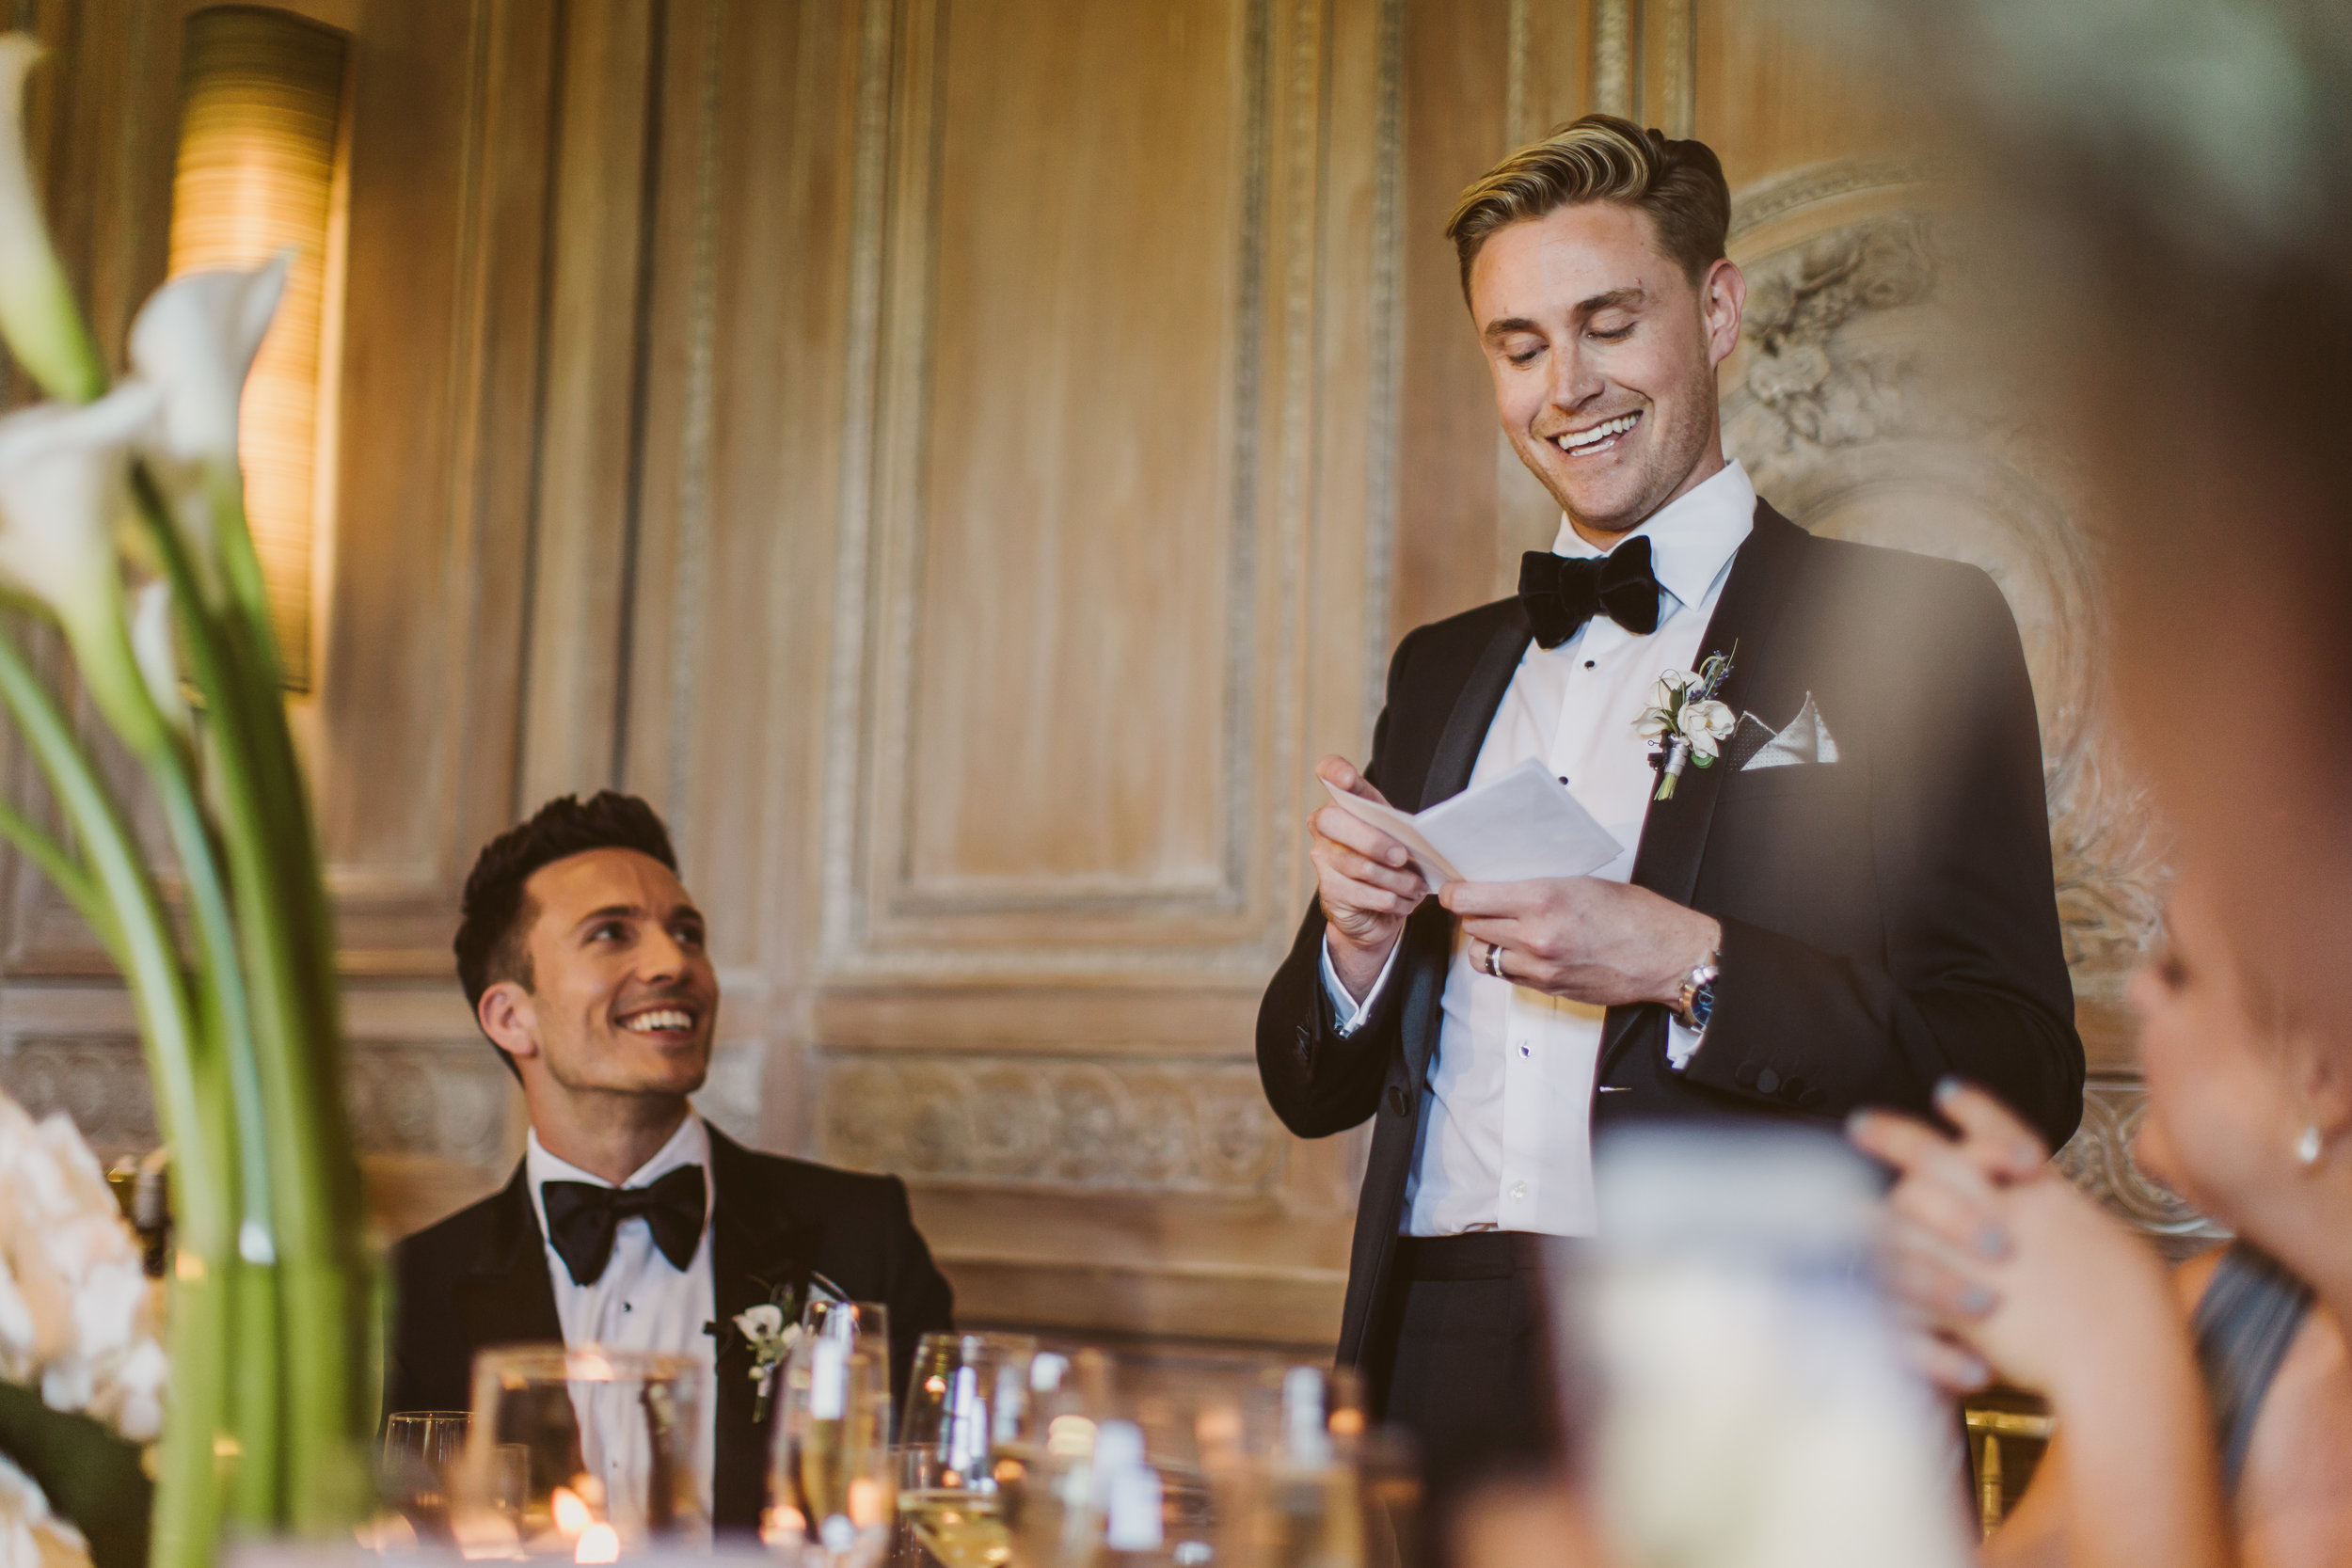 mr-theodore_same-sex-wedding23.jpg